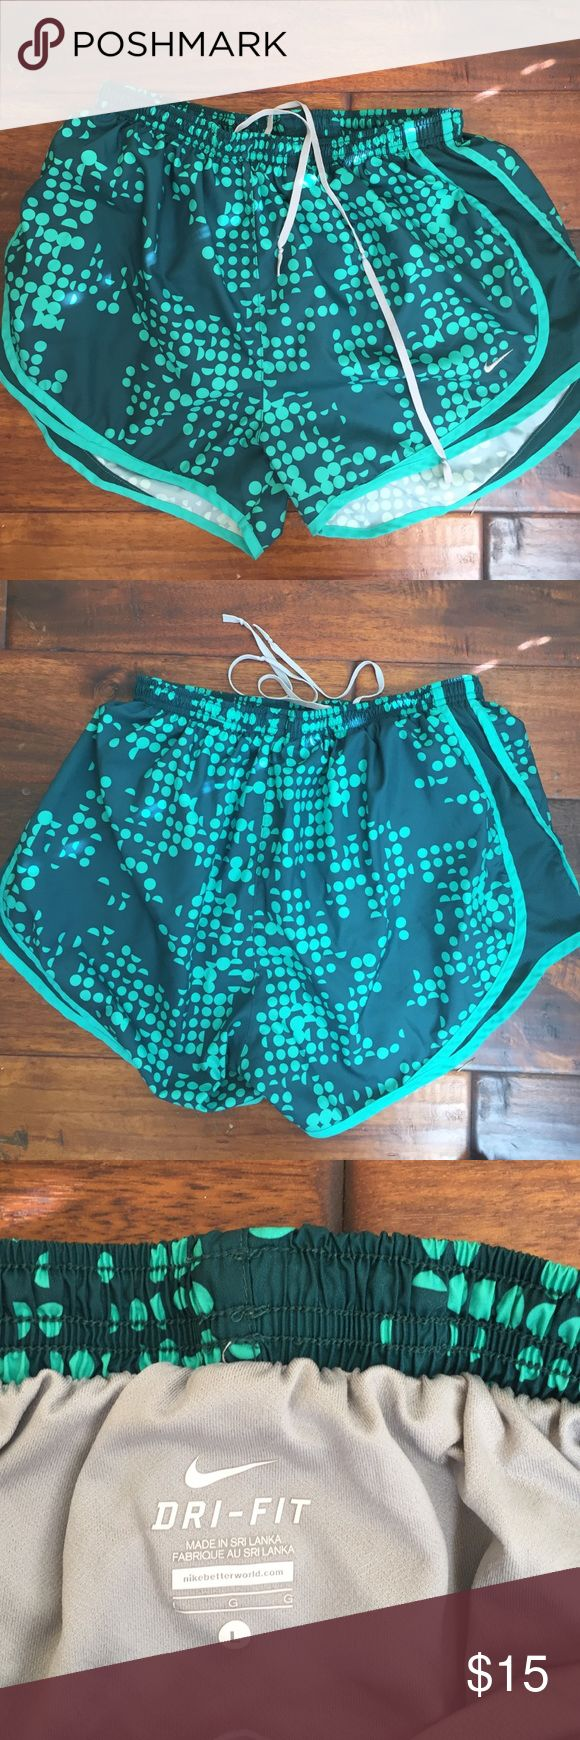 Nike Dri Fit Shorts. Nike Dri Fit Shorts. Great for walking and running . Drawstring and rear inside pocket. Good condition. Not stains, holes, or tears Nike Shorts